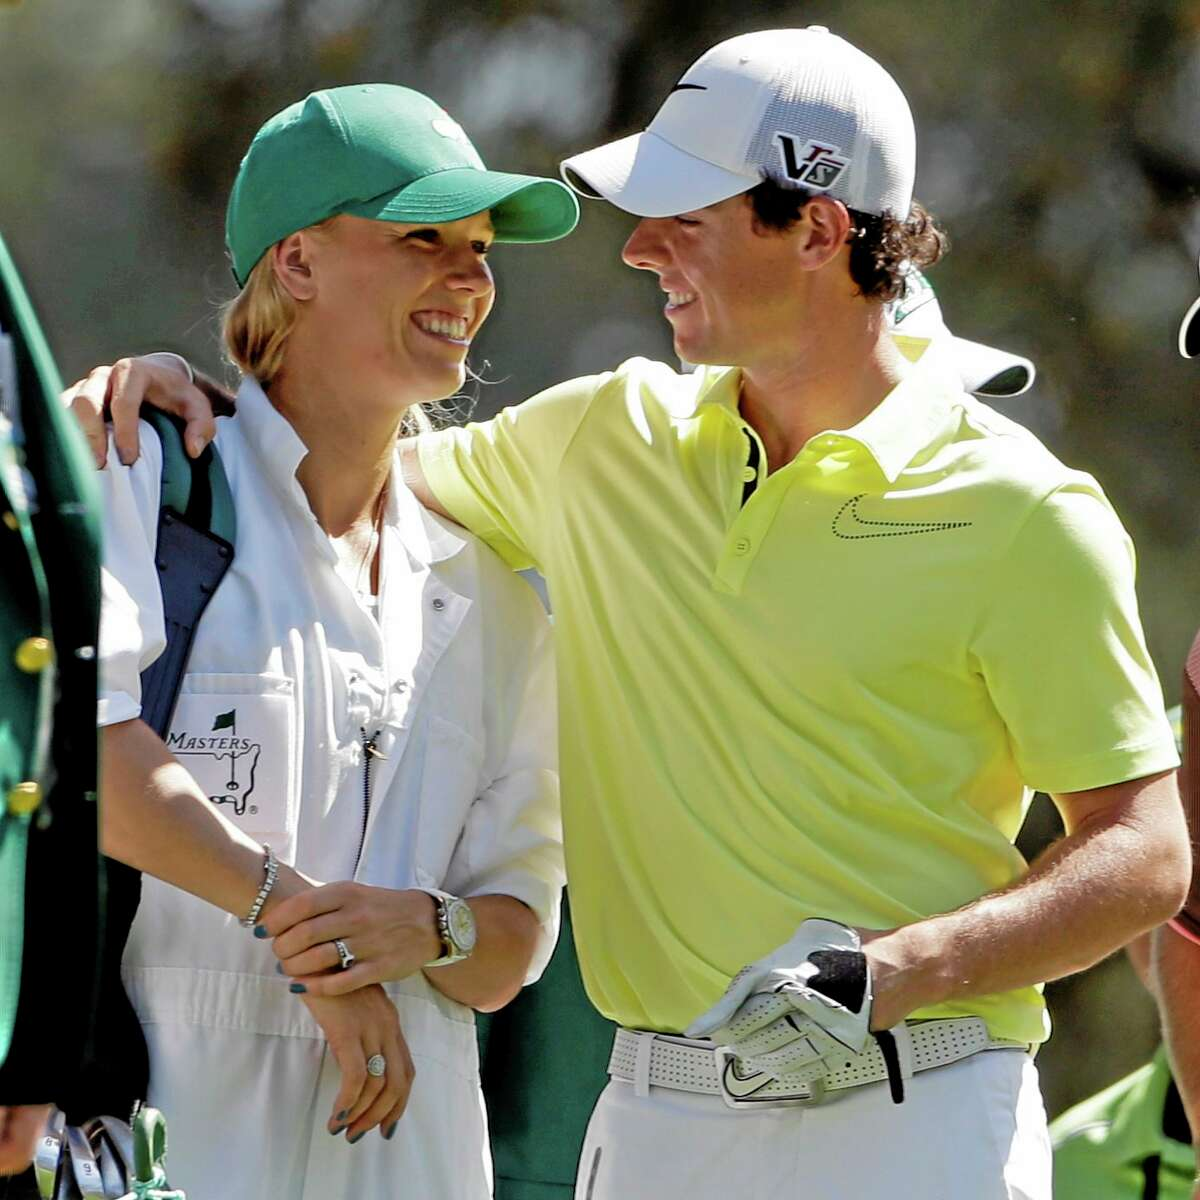 In this April 10, 2013 file photo, Rory McIlroy hugs his caddie, four-time New Haven Open champion Caroline Wozniacki, during the par three competition before the Masters in Augusta, Ga. McIlroy has broken off his engagement to Wozniacki only days after sending out wedding invitations.